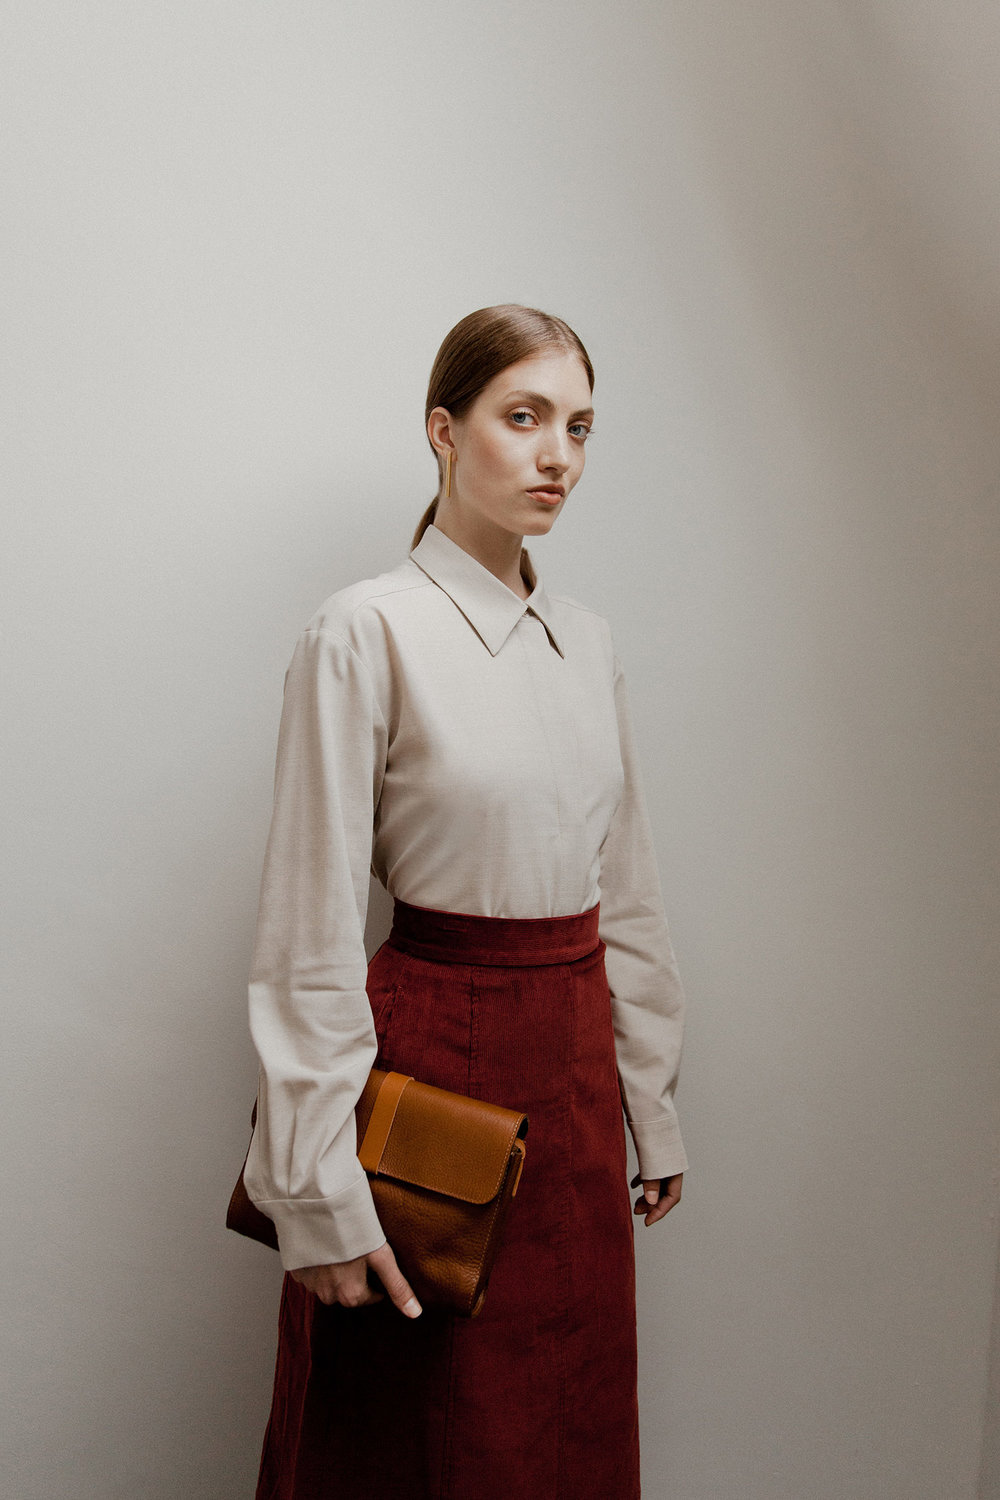 Refabricated shirt in oatmeal, £79, COS; Cord skirt in Boysenberry, £130, Toast; Rhizo leather bag in tan, £230, M.Hulot; Brass bar earrings by Laura Lombardi, £67, Found